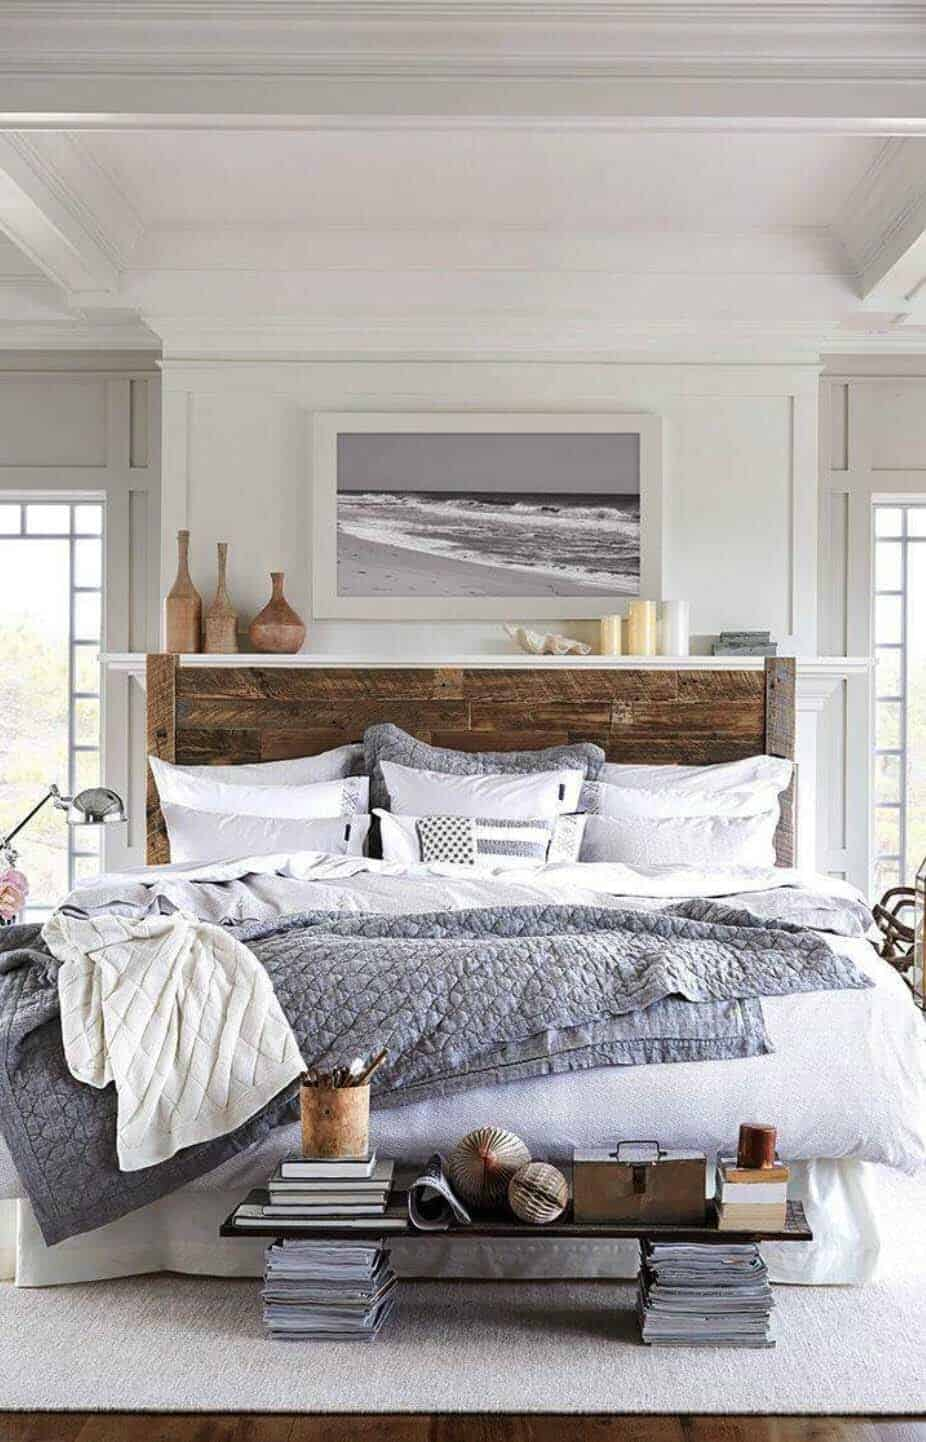 The Bedding Is From Lexington Clothing Co As Area Rug White Walls Makes This E Feel Bright And Airy Paint Color